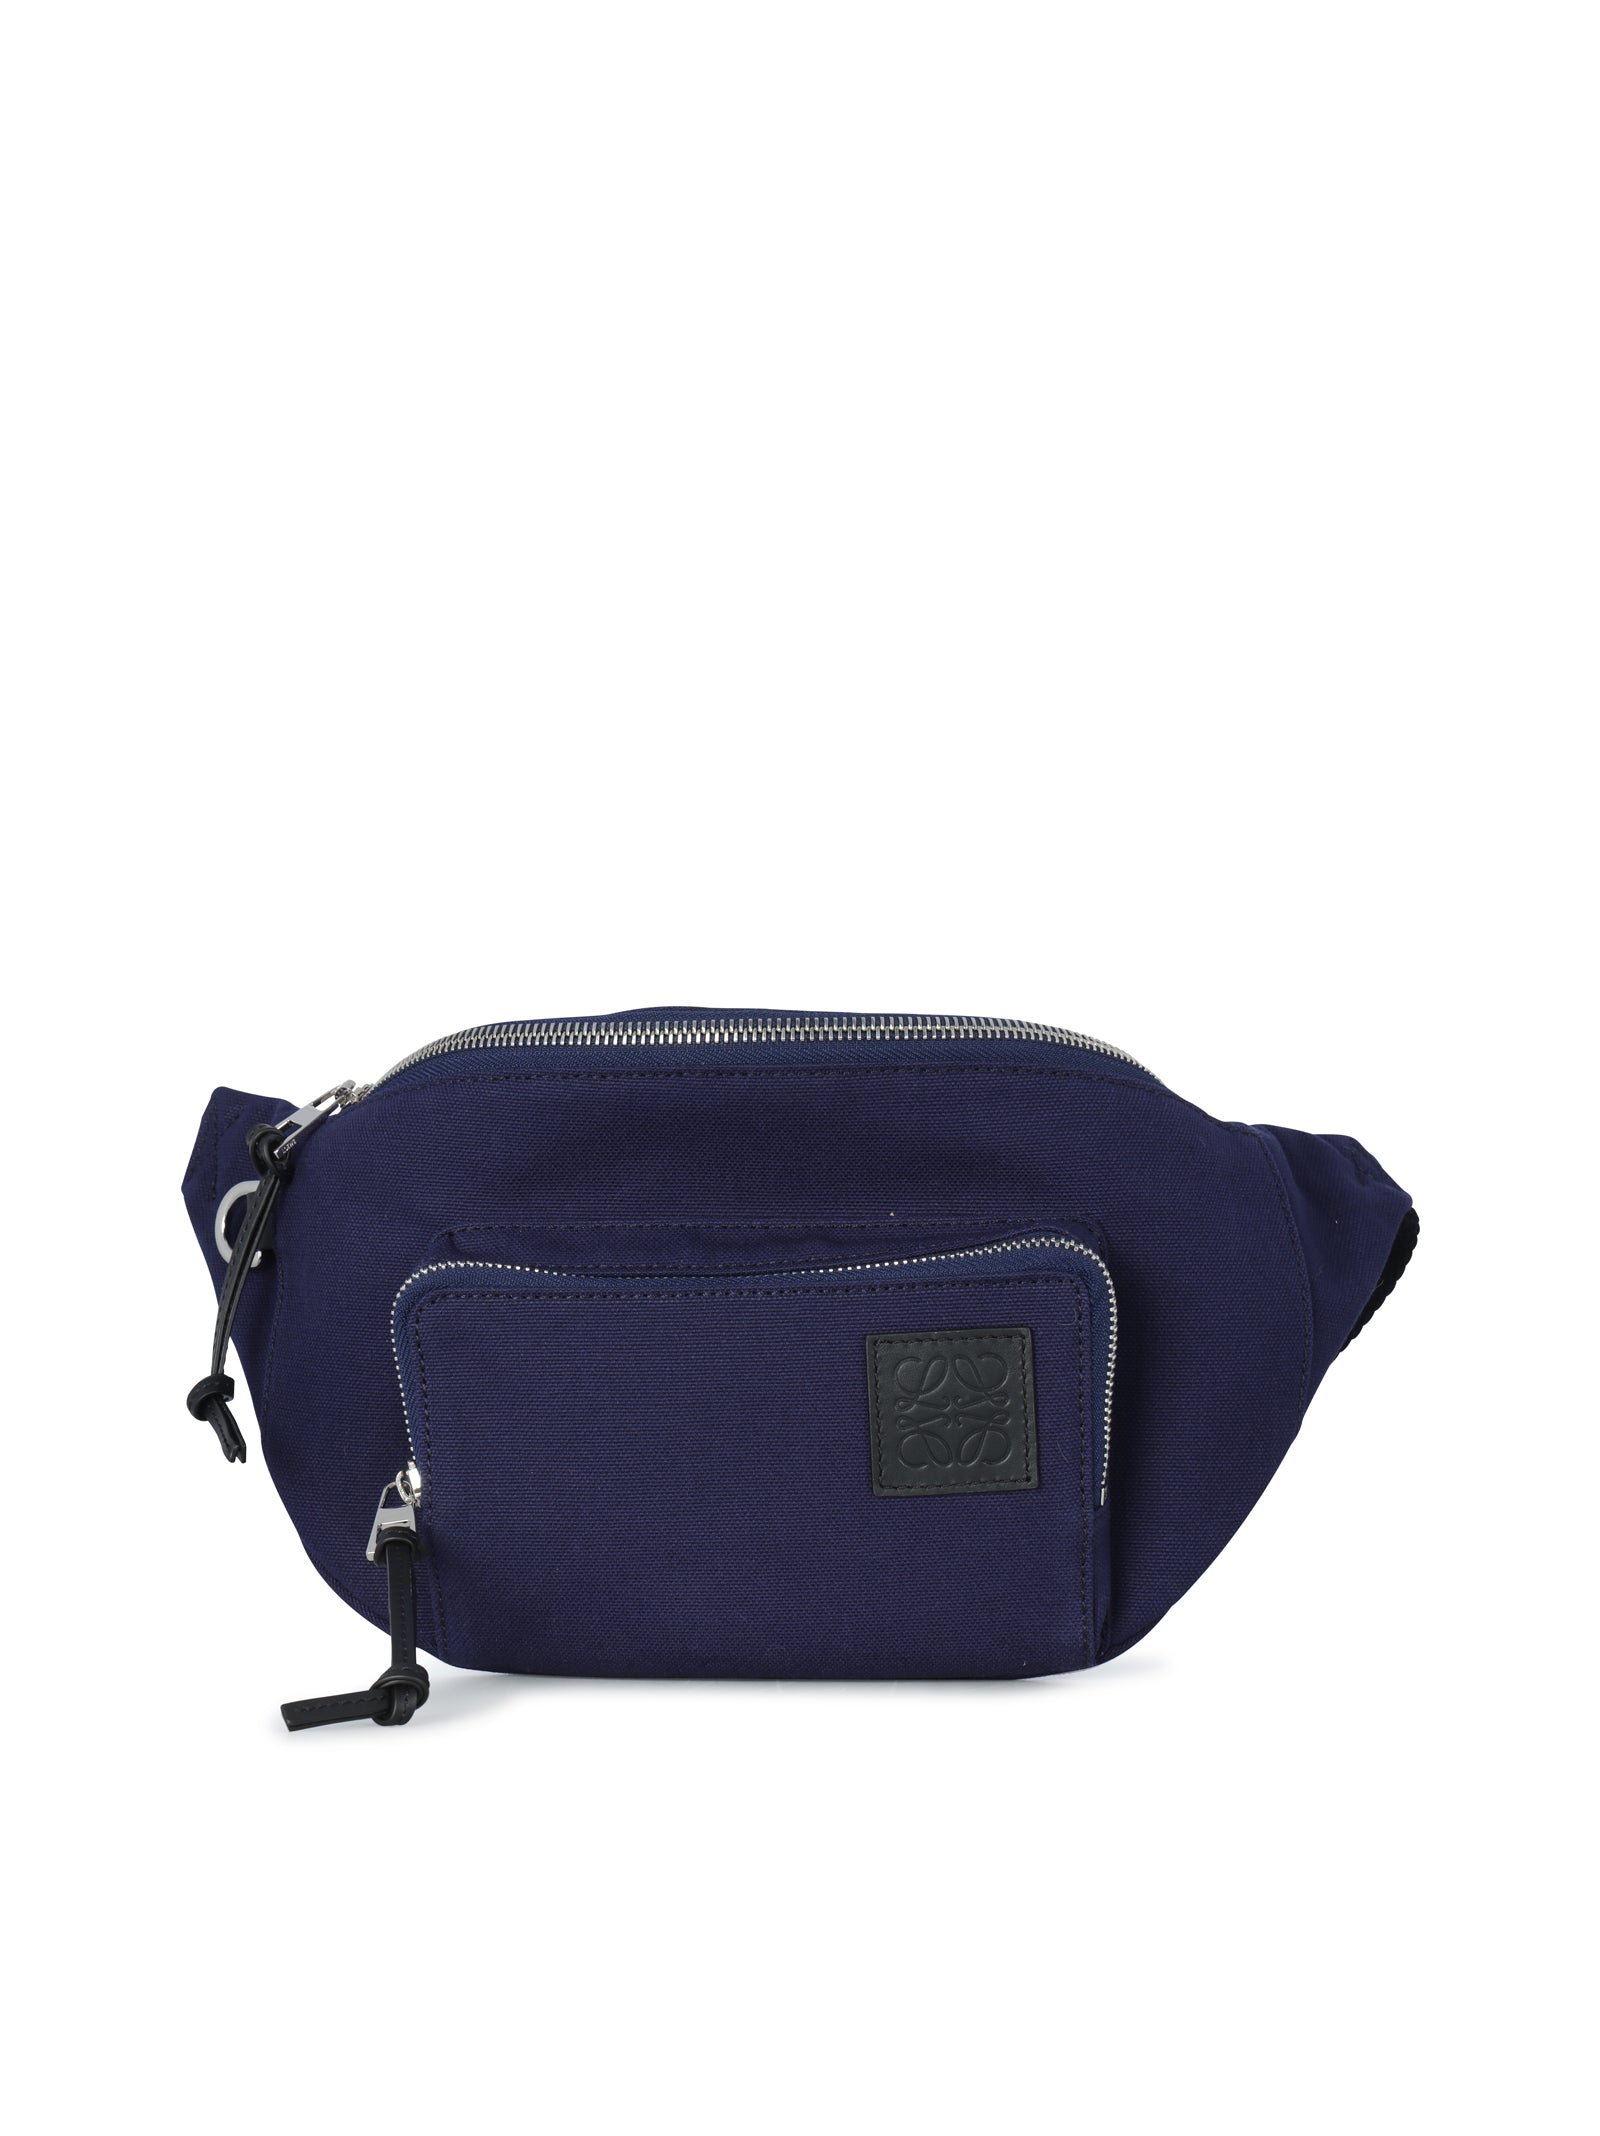 BUMBAG CANVAS